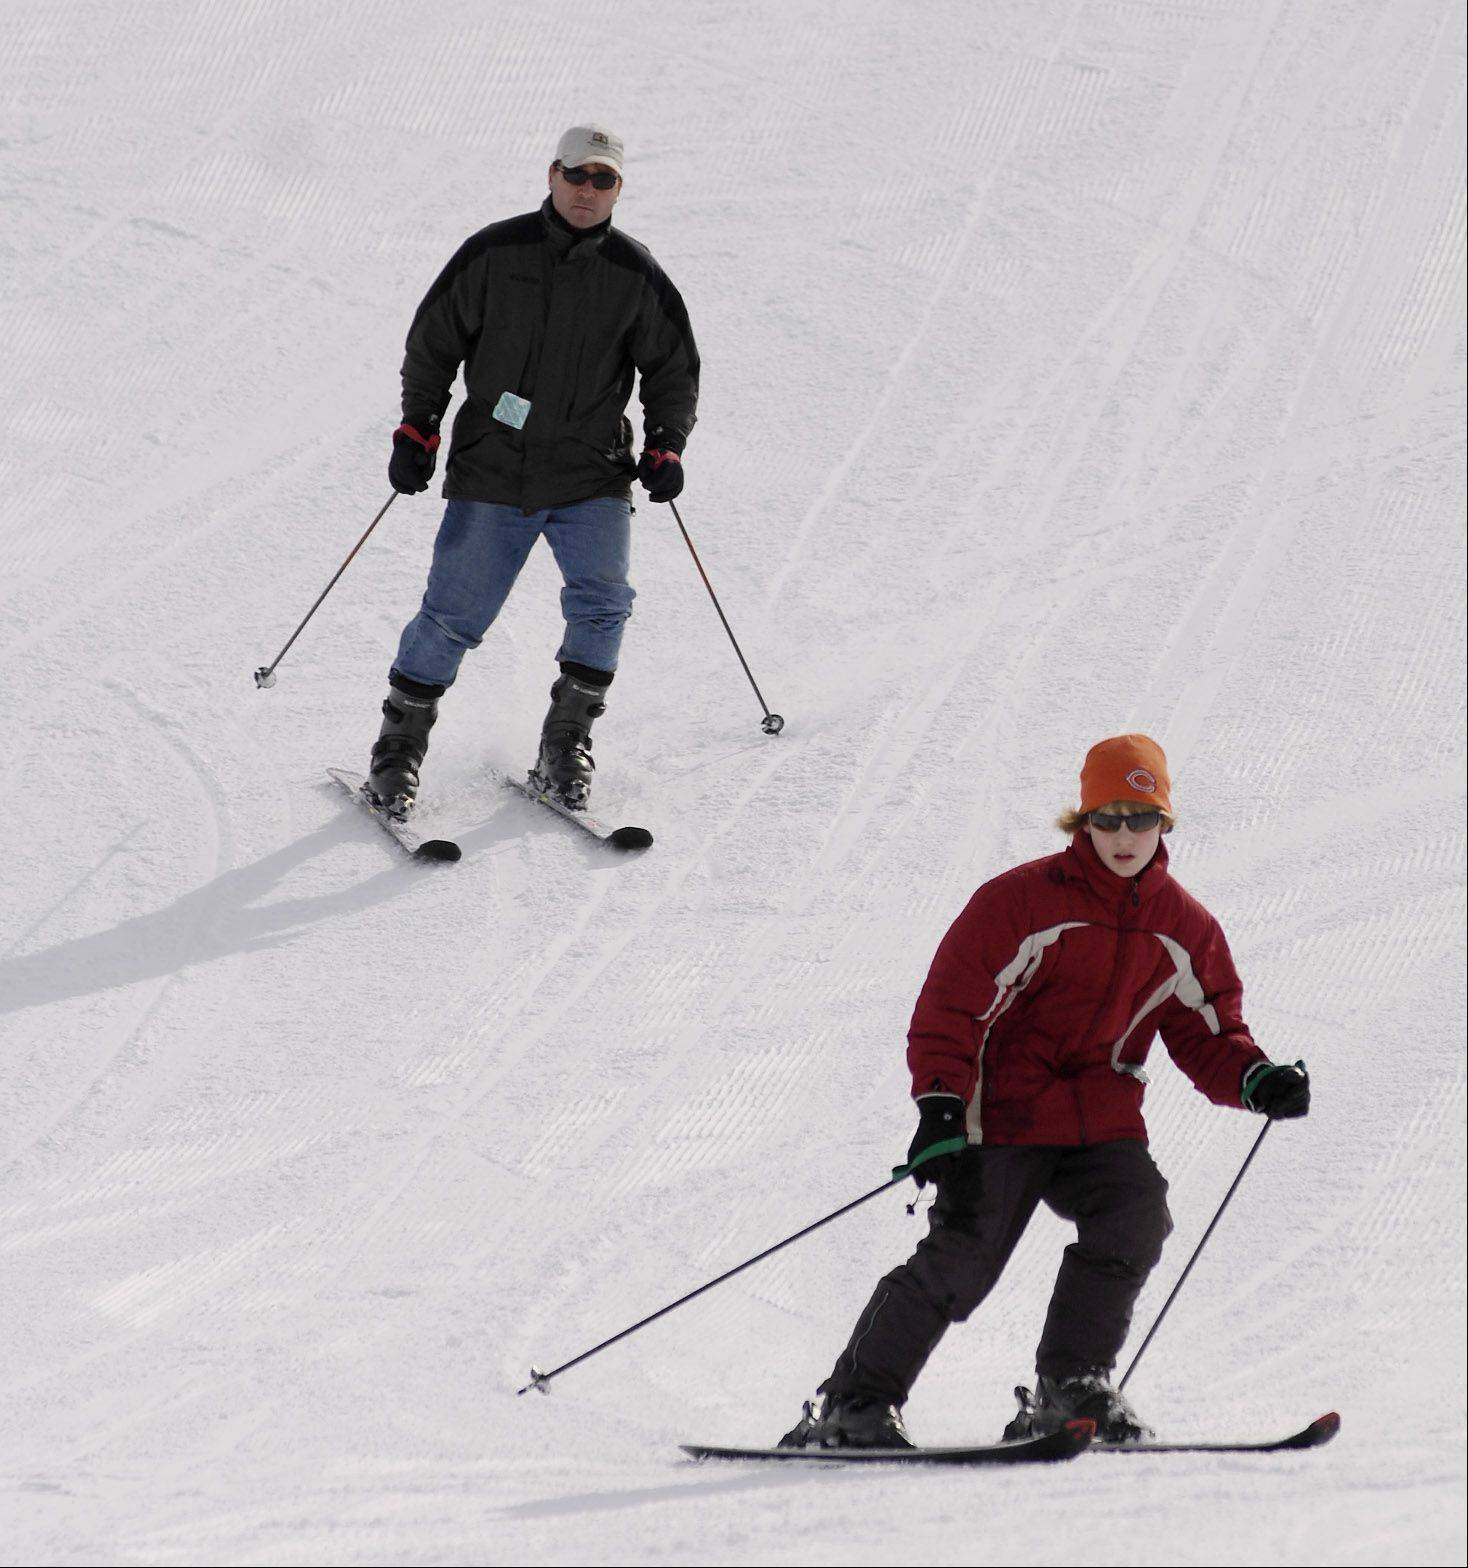 Olympic gold may be out of reach for most of us, but you can give skiing and snowboarding a try at Villa Olivia in Bartlett.